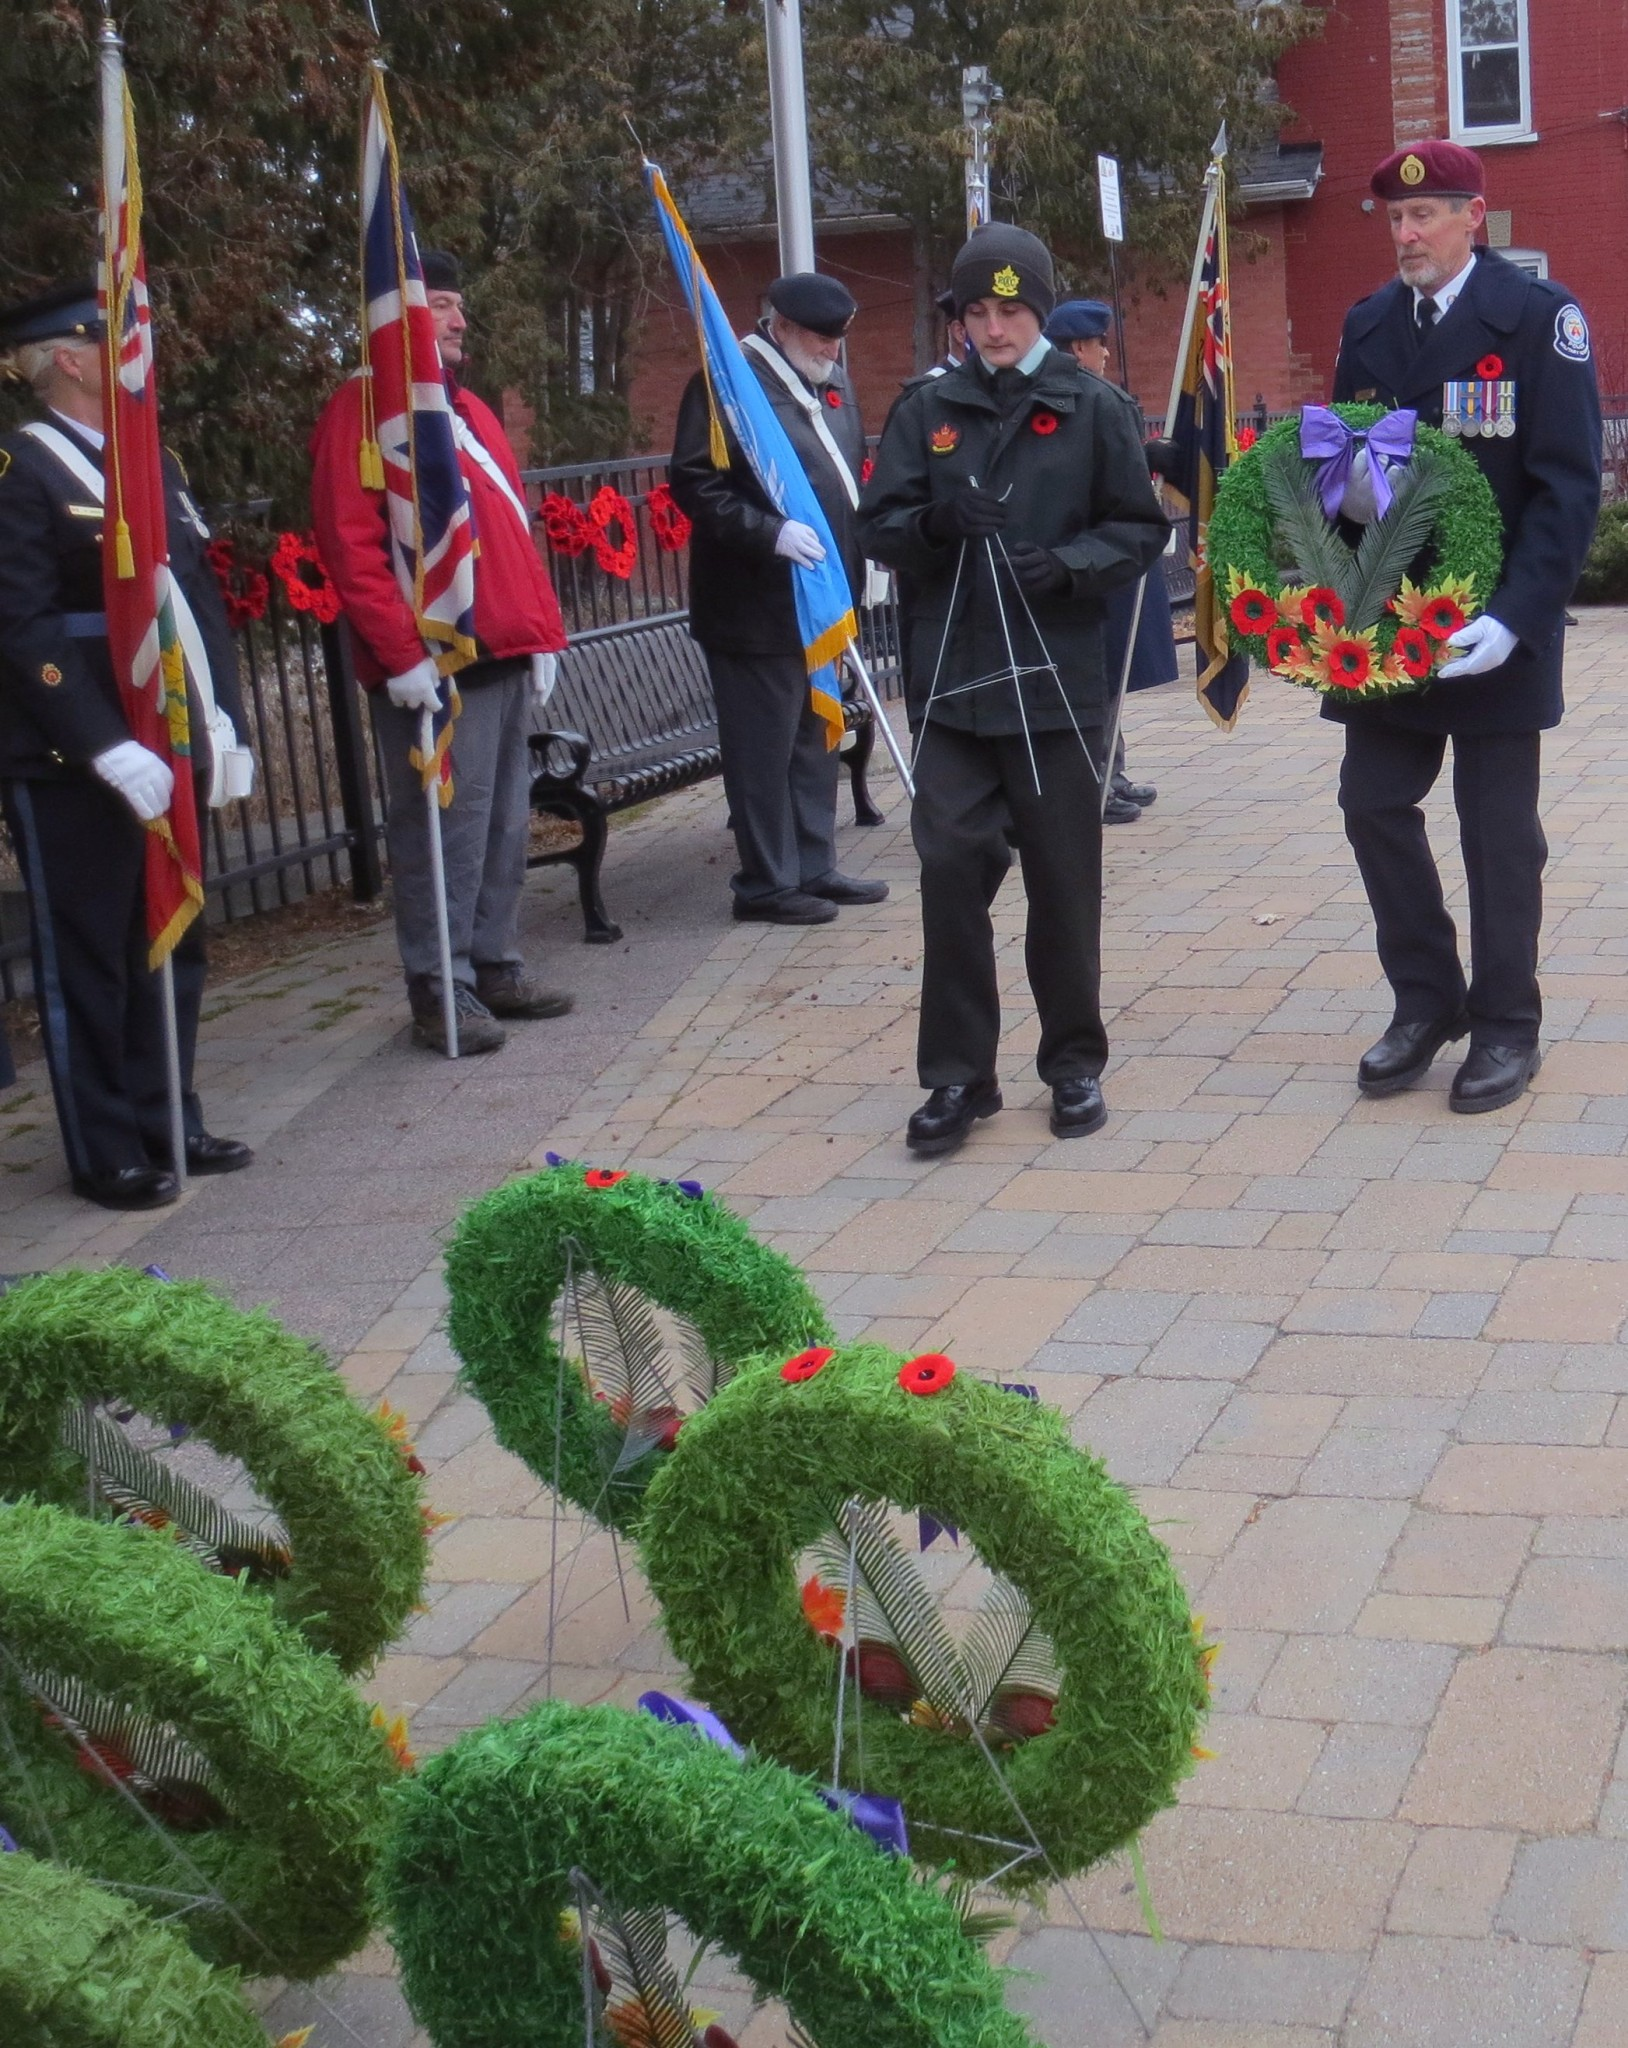 Canoe FM's on-air host and Board of Director, Paul Vorvis laying the Canoe FM wreath at the Haliburton cenotaph on Monday, November 11, 2019